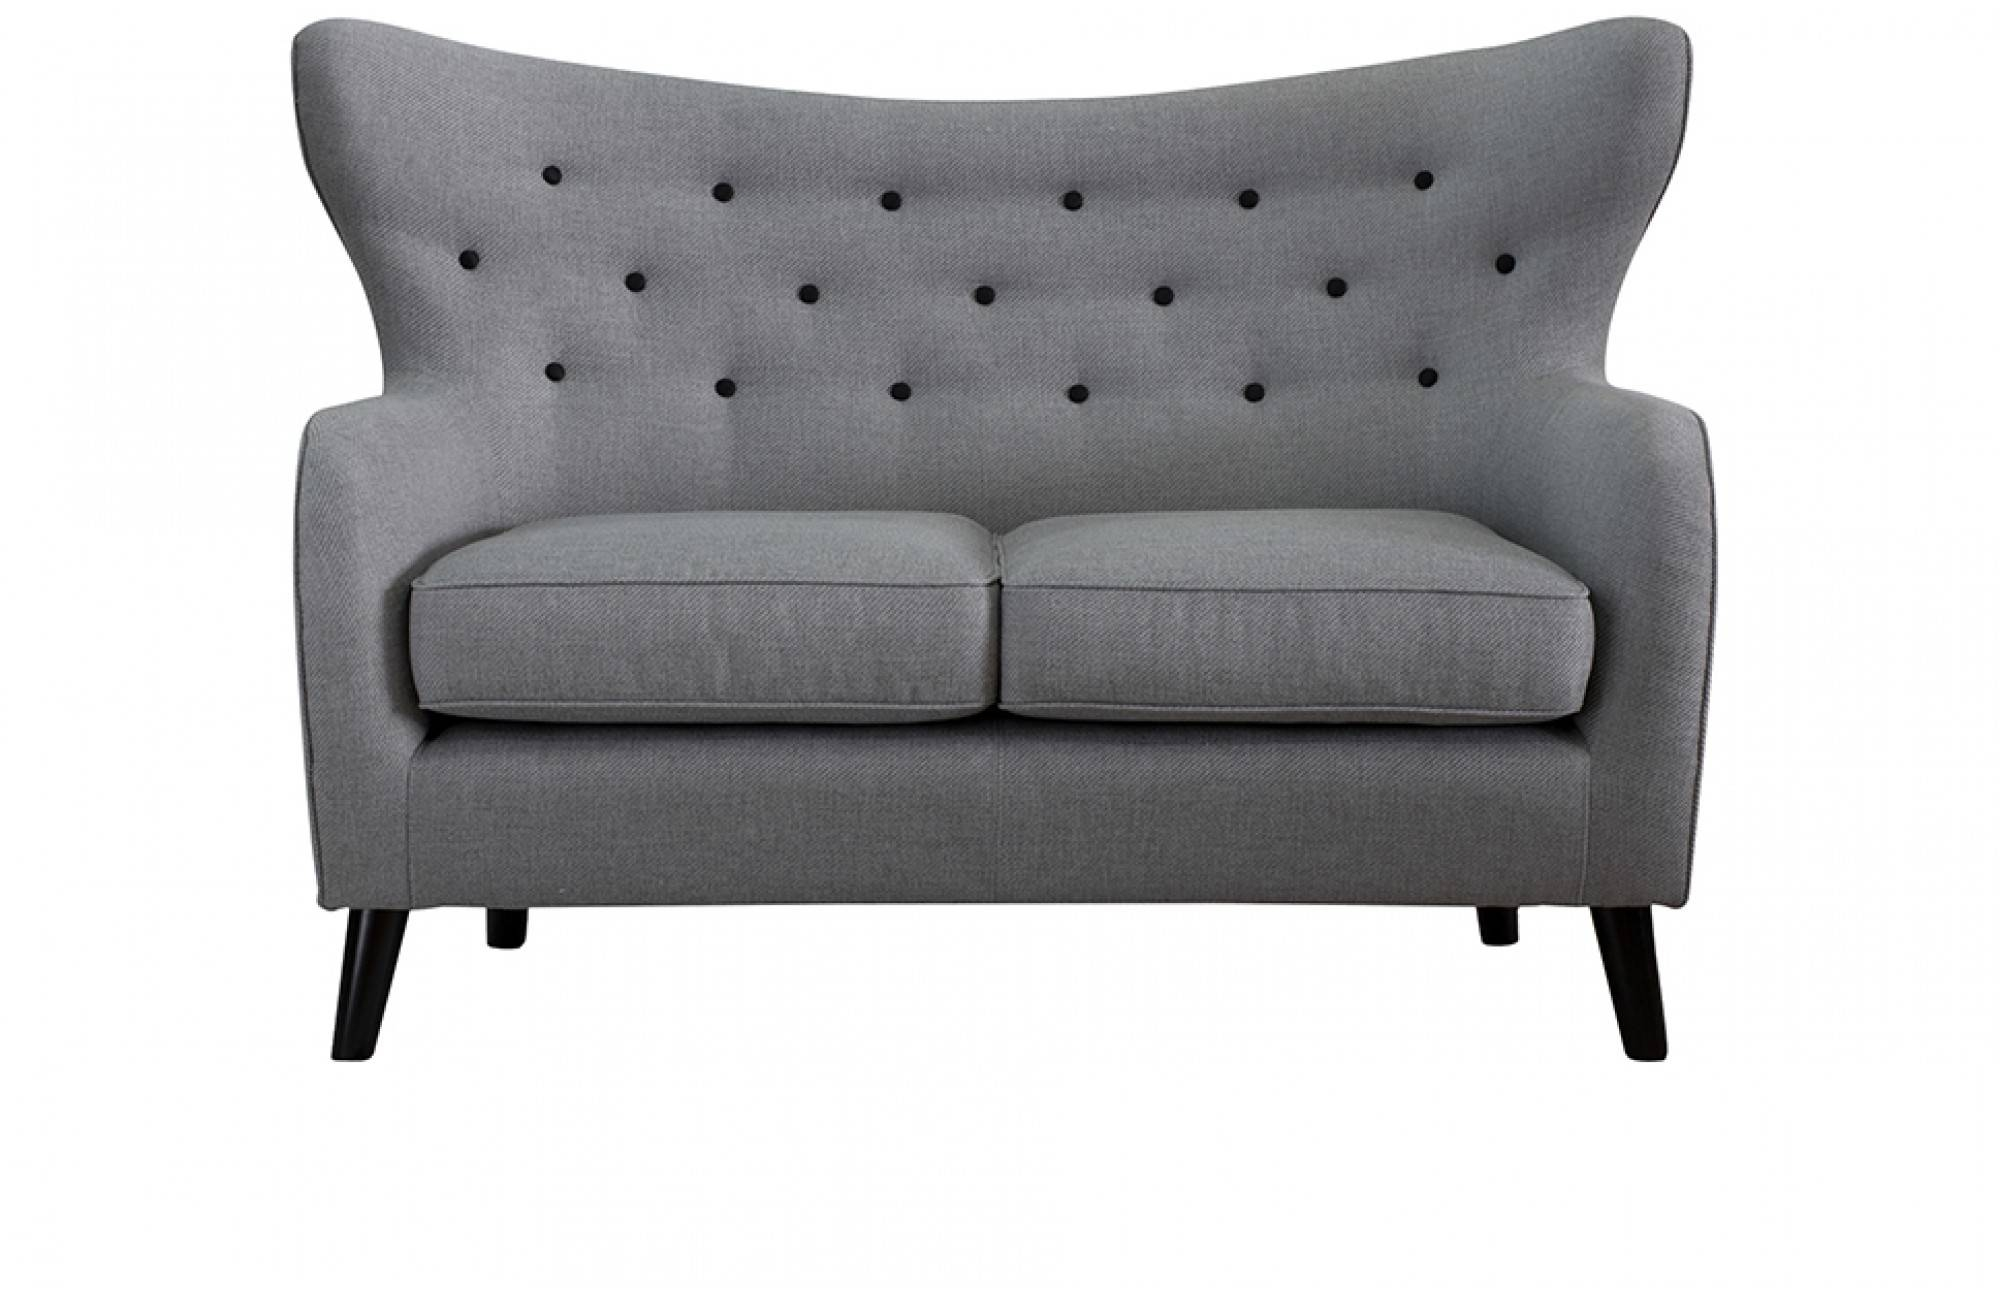 2 Seater Sofas with 2 Seater Sofas (Image 3 of 30)